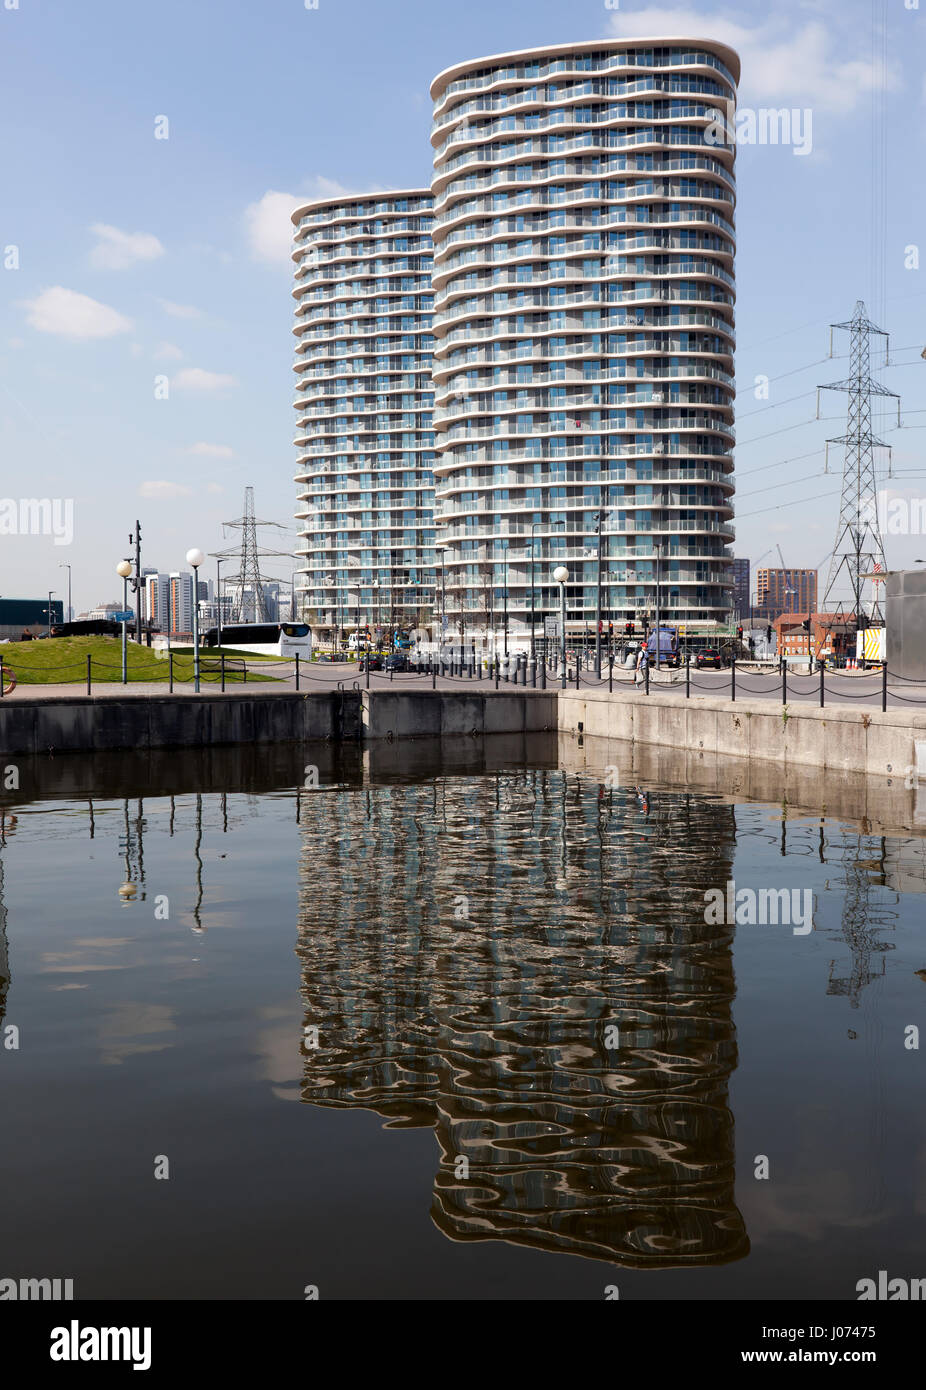 High Rise Apartment Blocks at the Western Gateway of the Royal Victoria Docks, Newham, London - Stock Image